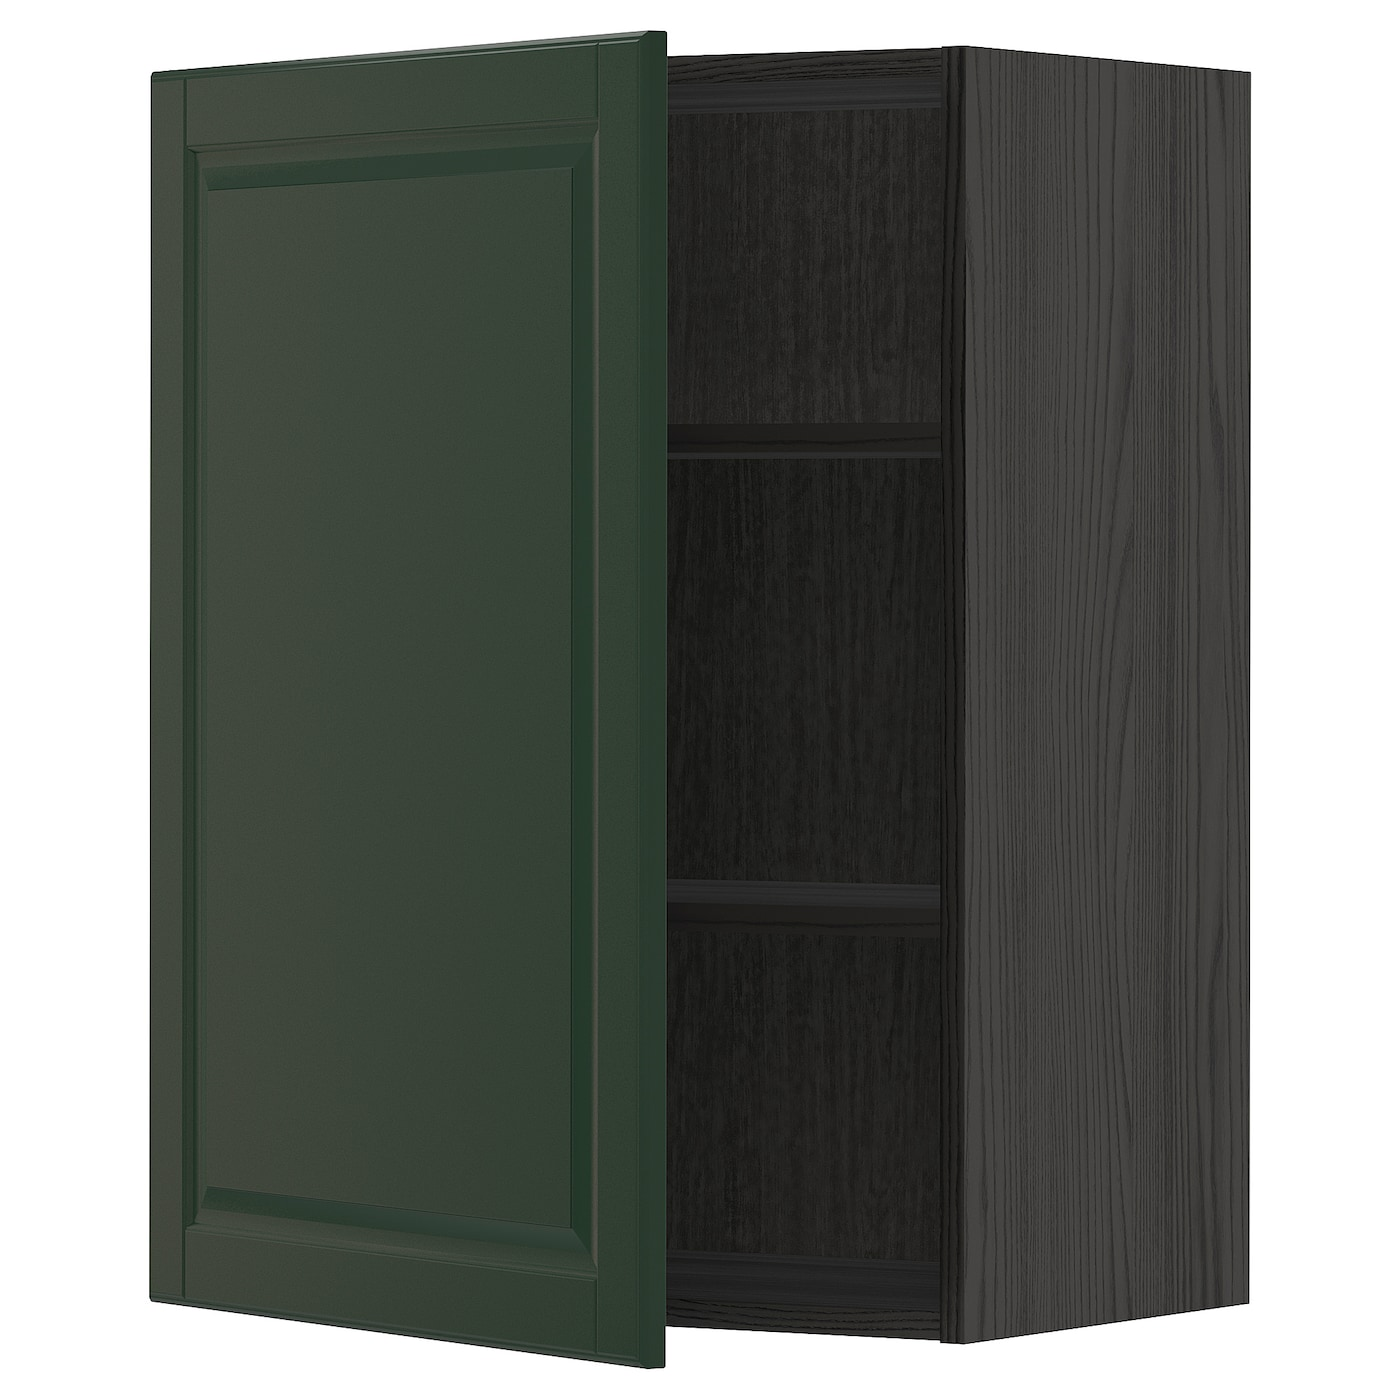 Wall Cabinet With Shelves Metod Black Bodbyn Dark Green